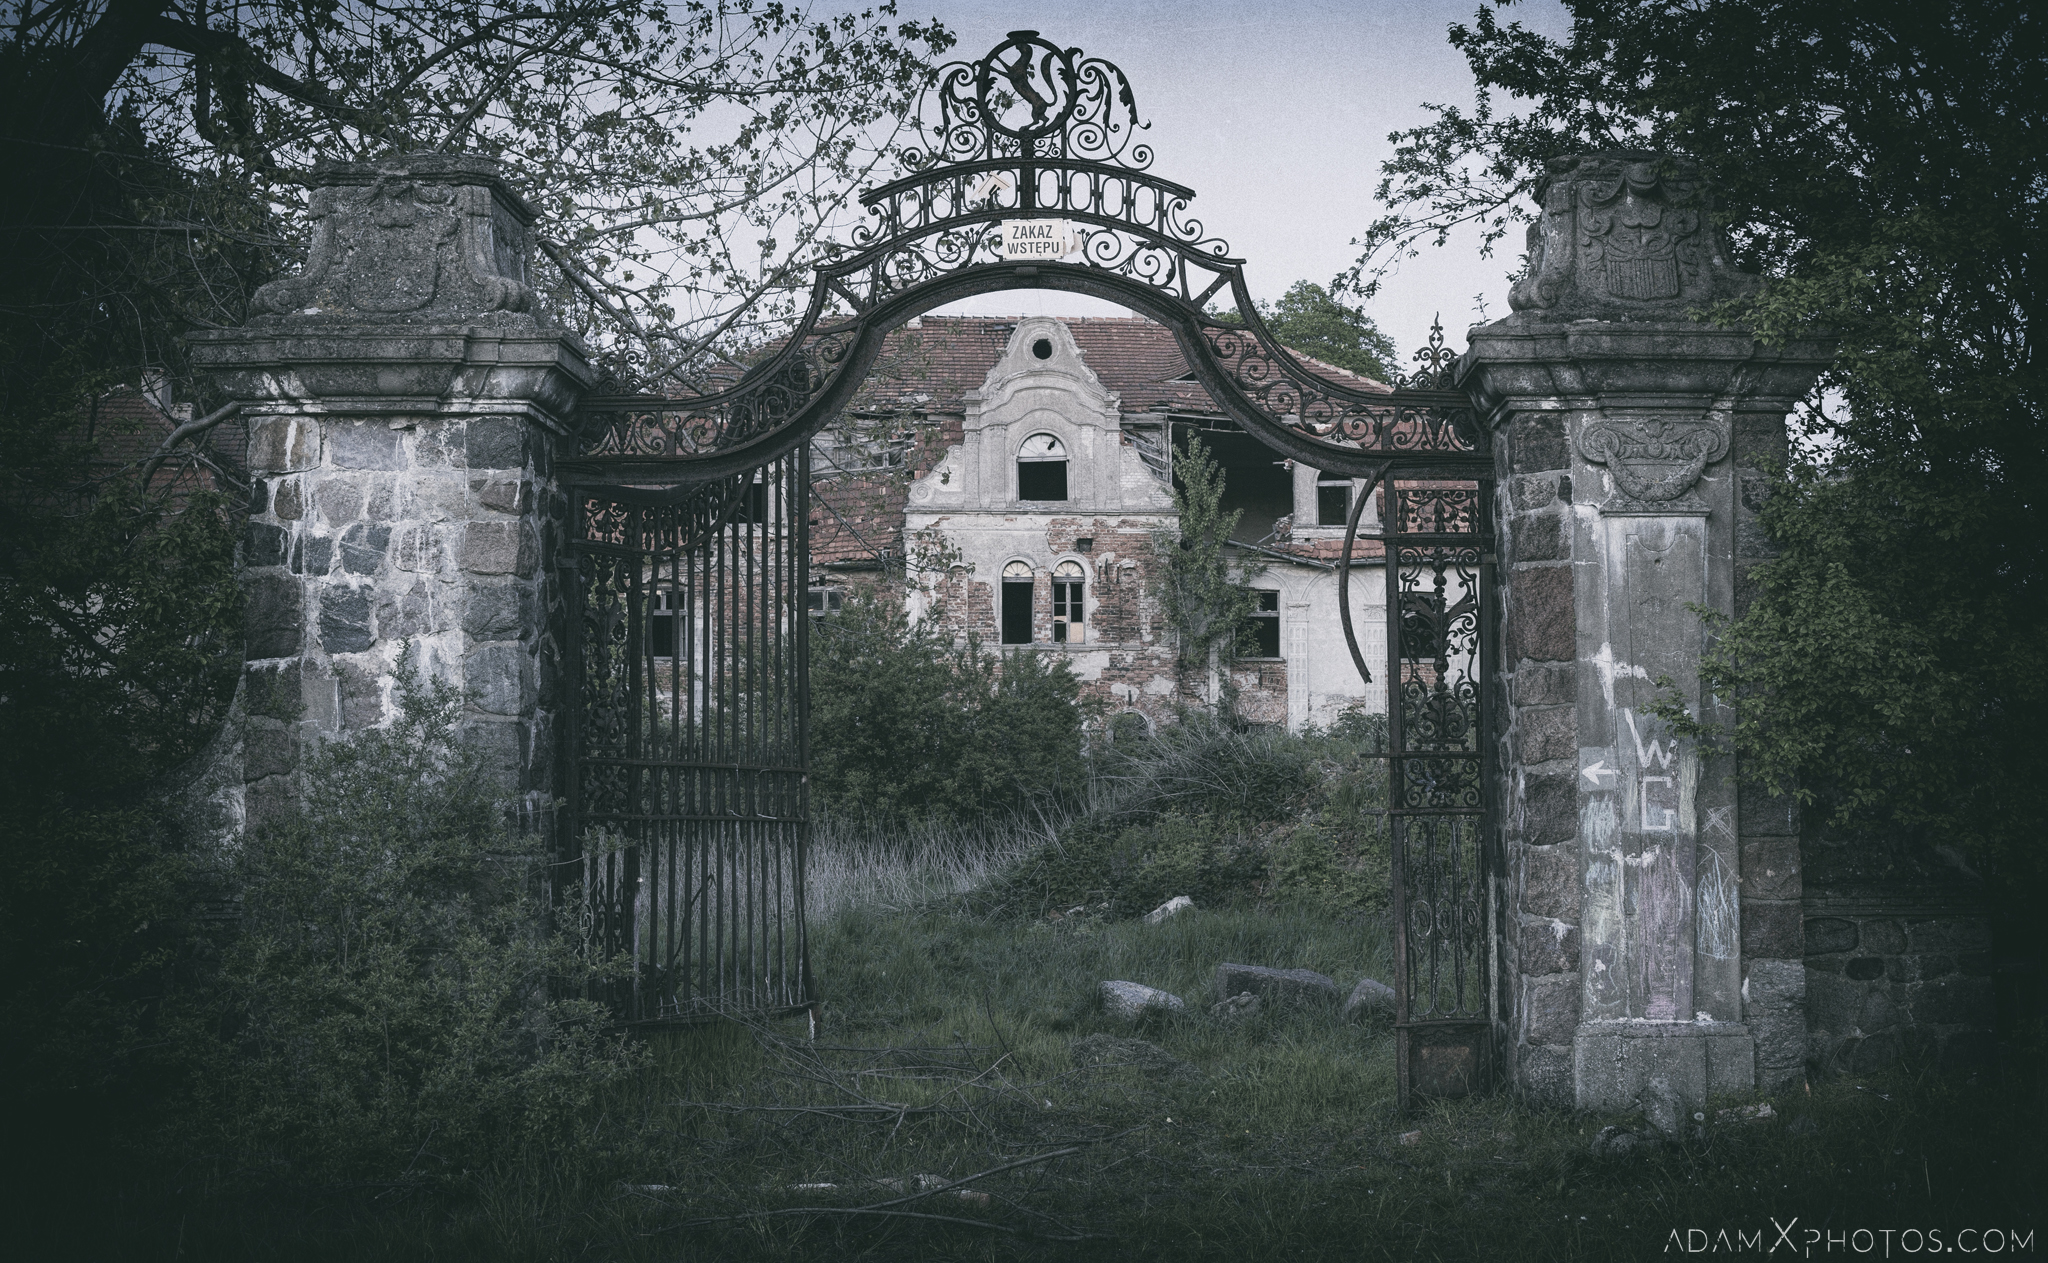 Gate overgrown External Exterior Outside Front Facade Palace Glinka Pałac w Glince Urbex Poland Adam X Urban Exploration Access 2016 Abandoned decay lost forgotten derelict location spooky scary haunting eerie